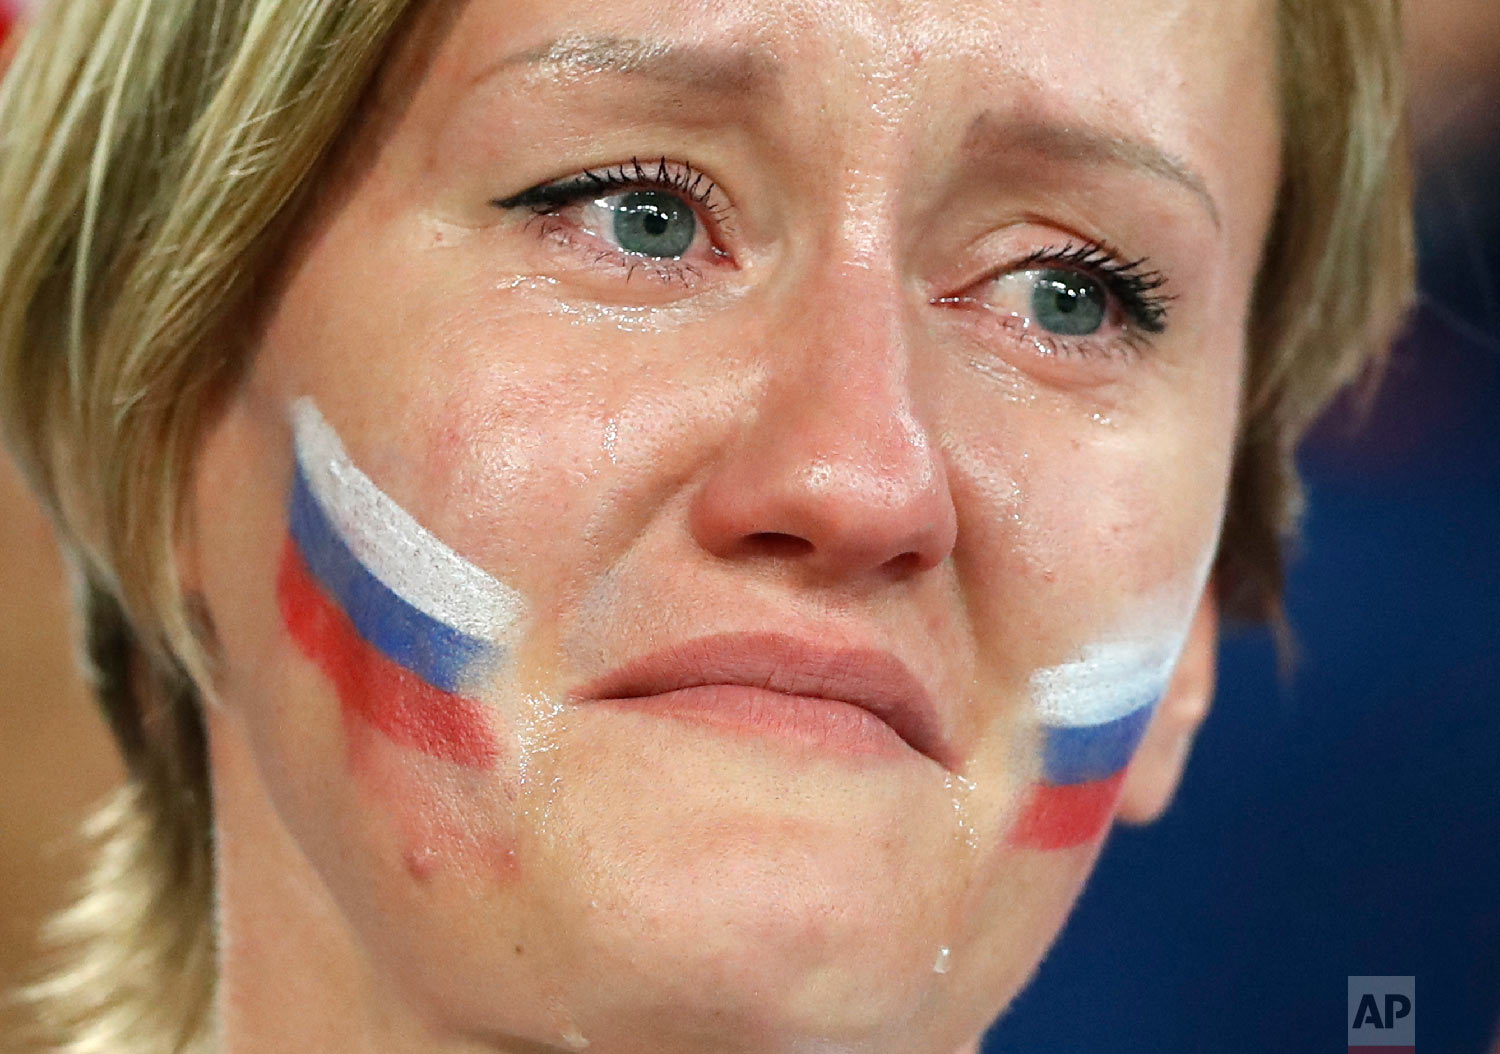 A Russia's fan cries after Russia's loss in the quarterfinal match between Russia and Croatia at the 2018 soccer World Cup in the Fisht Stadium, in Sochi, Russia, Saturday, July 7, 2018. (AP Photo/Darko Bandic)